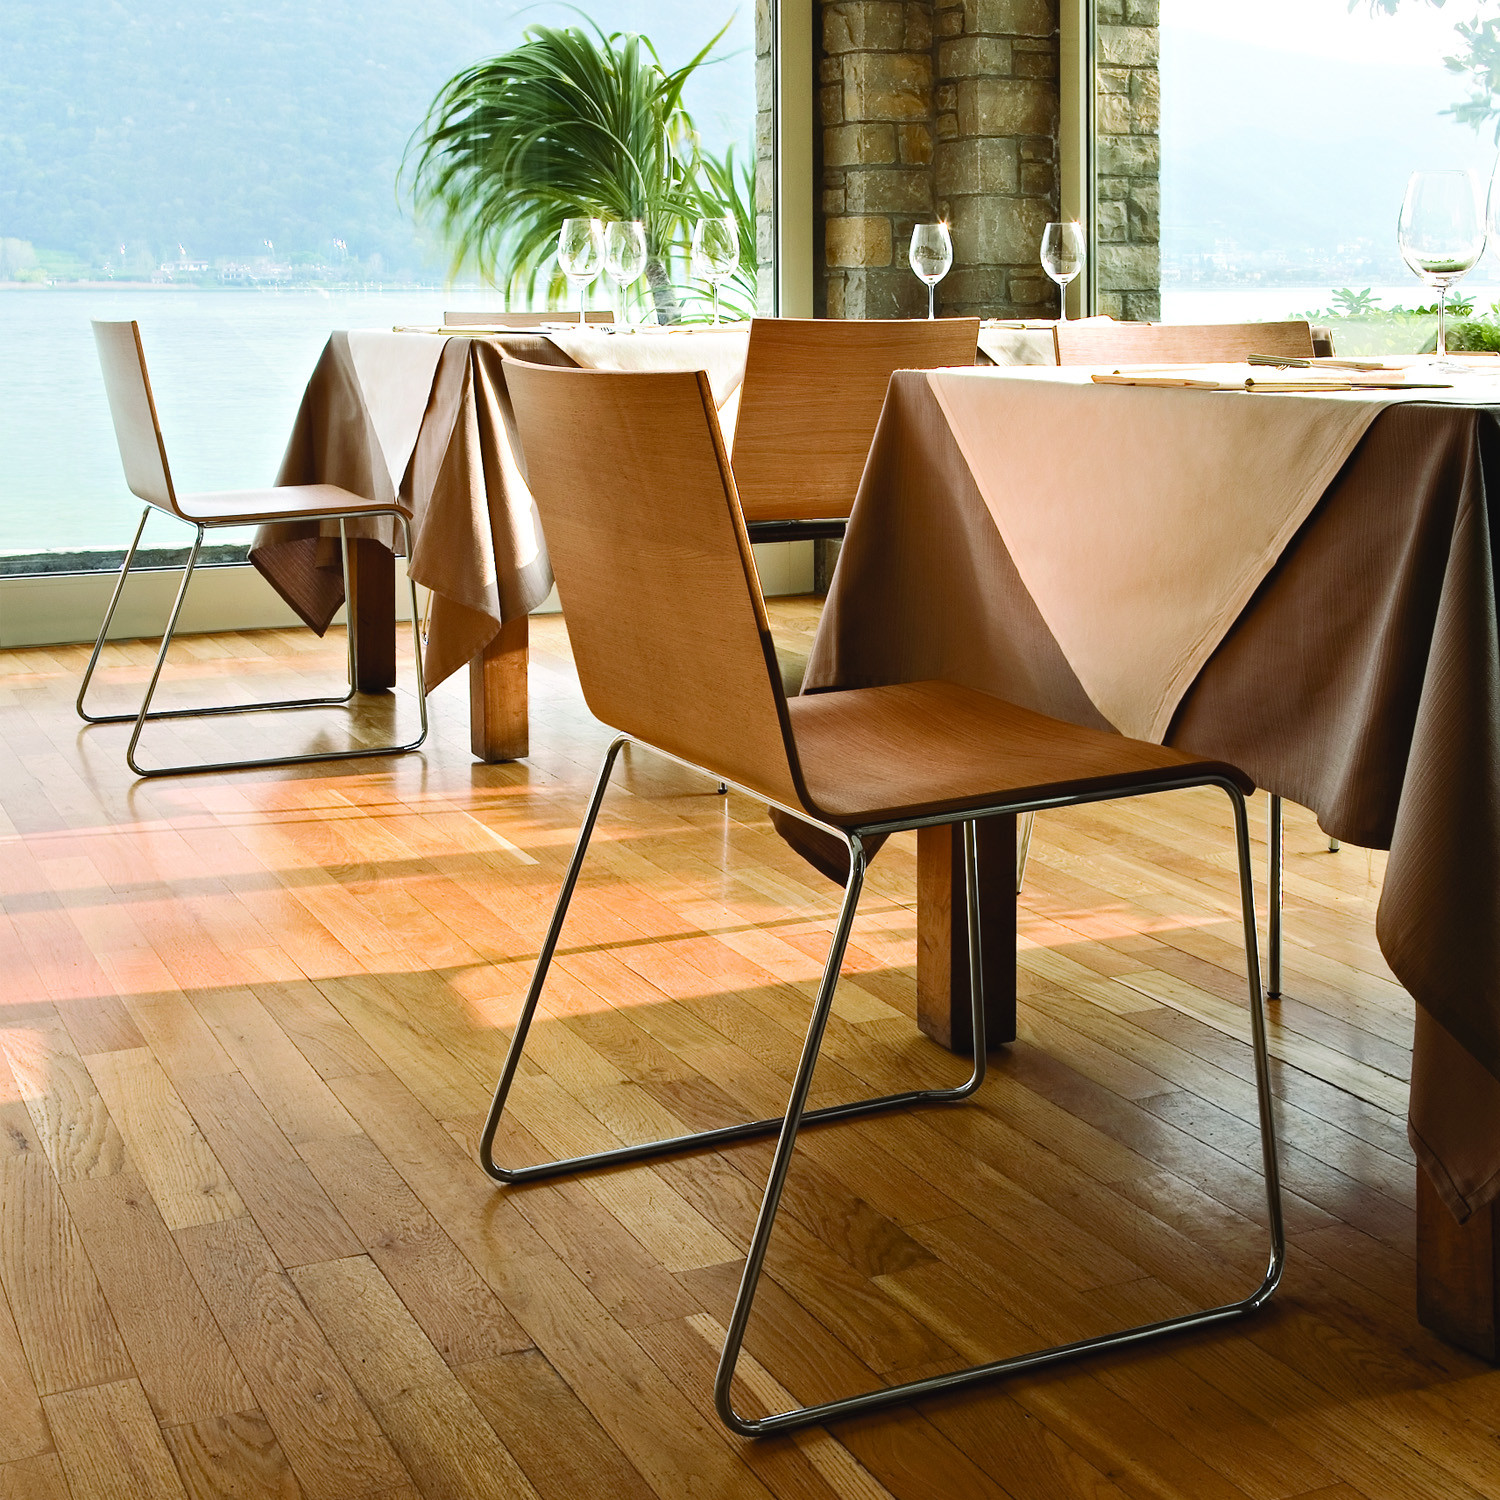 Casablanca Multipurpose Chairs by Apres Furniture